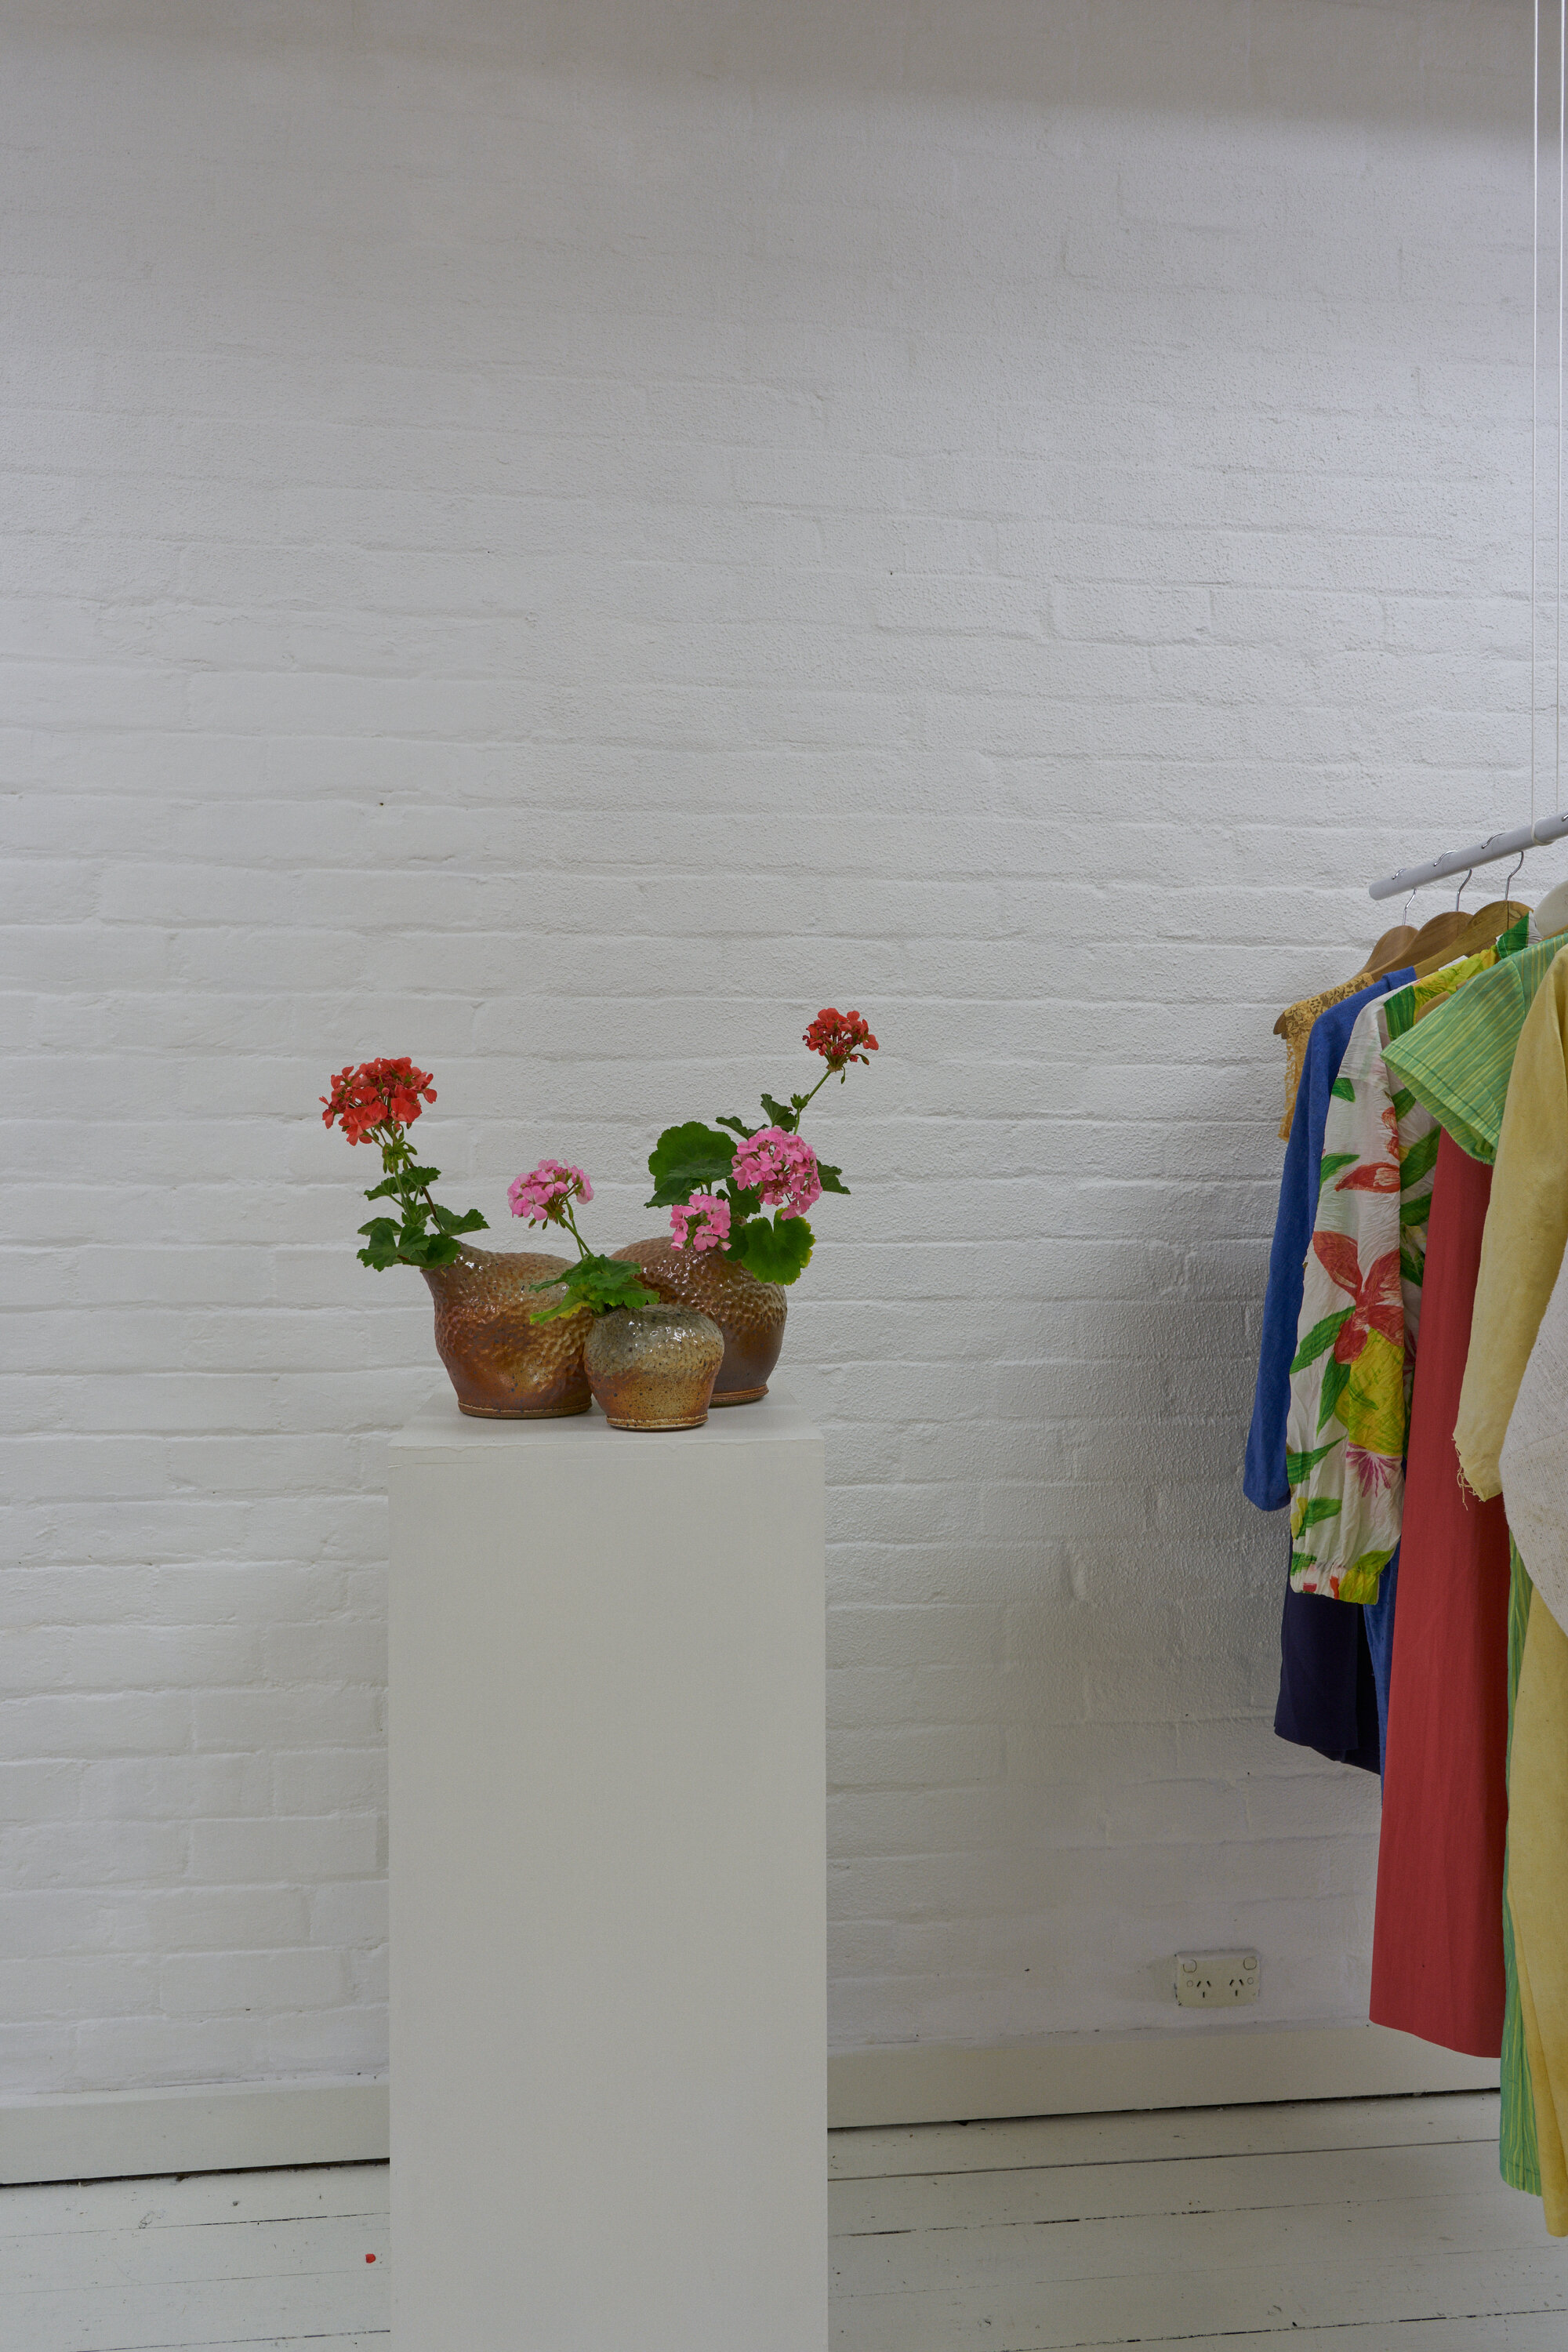 20191014_a flat shop [floral arrangements documentation_hannah vorrath-pajak]_DSC06317.jpg